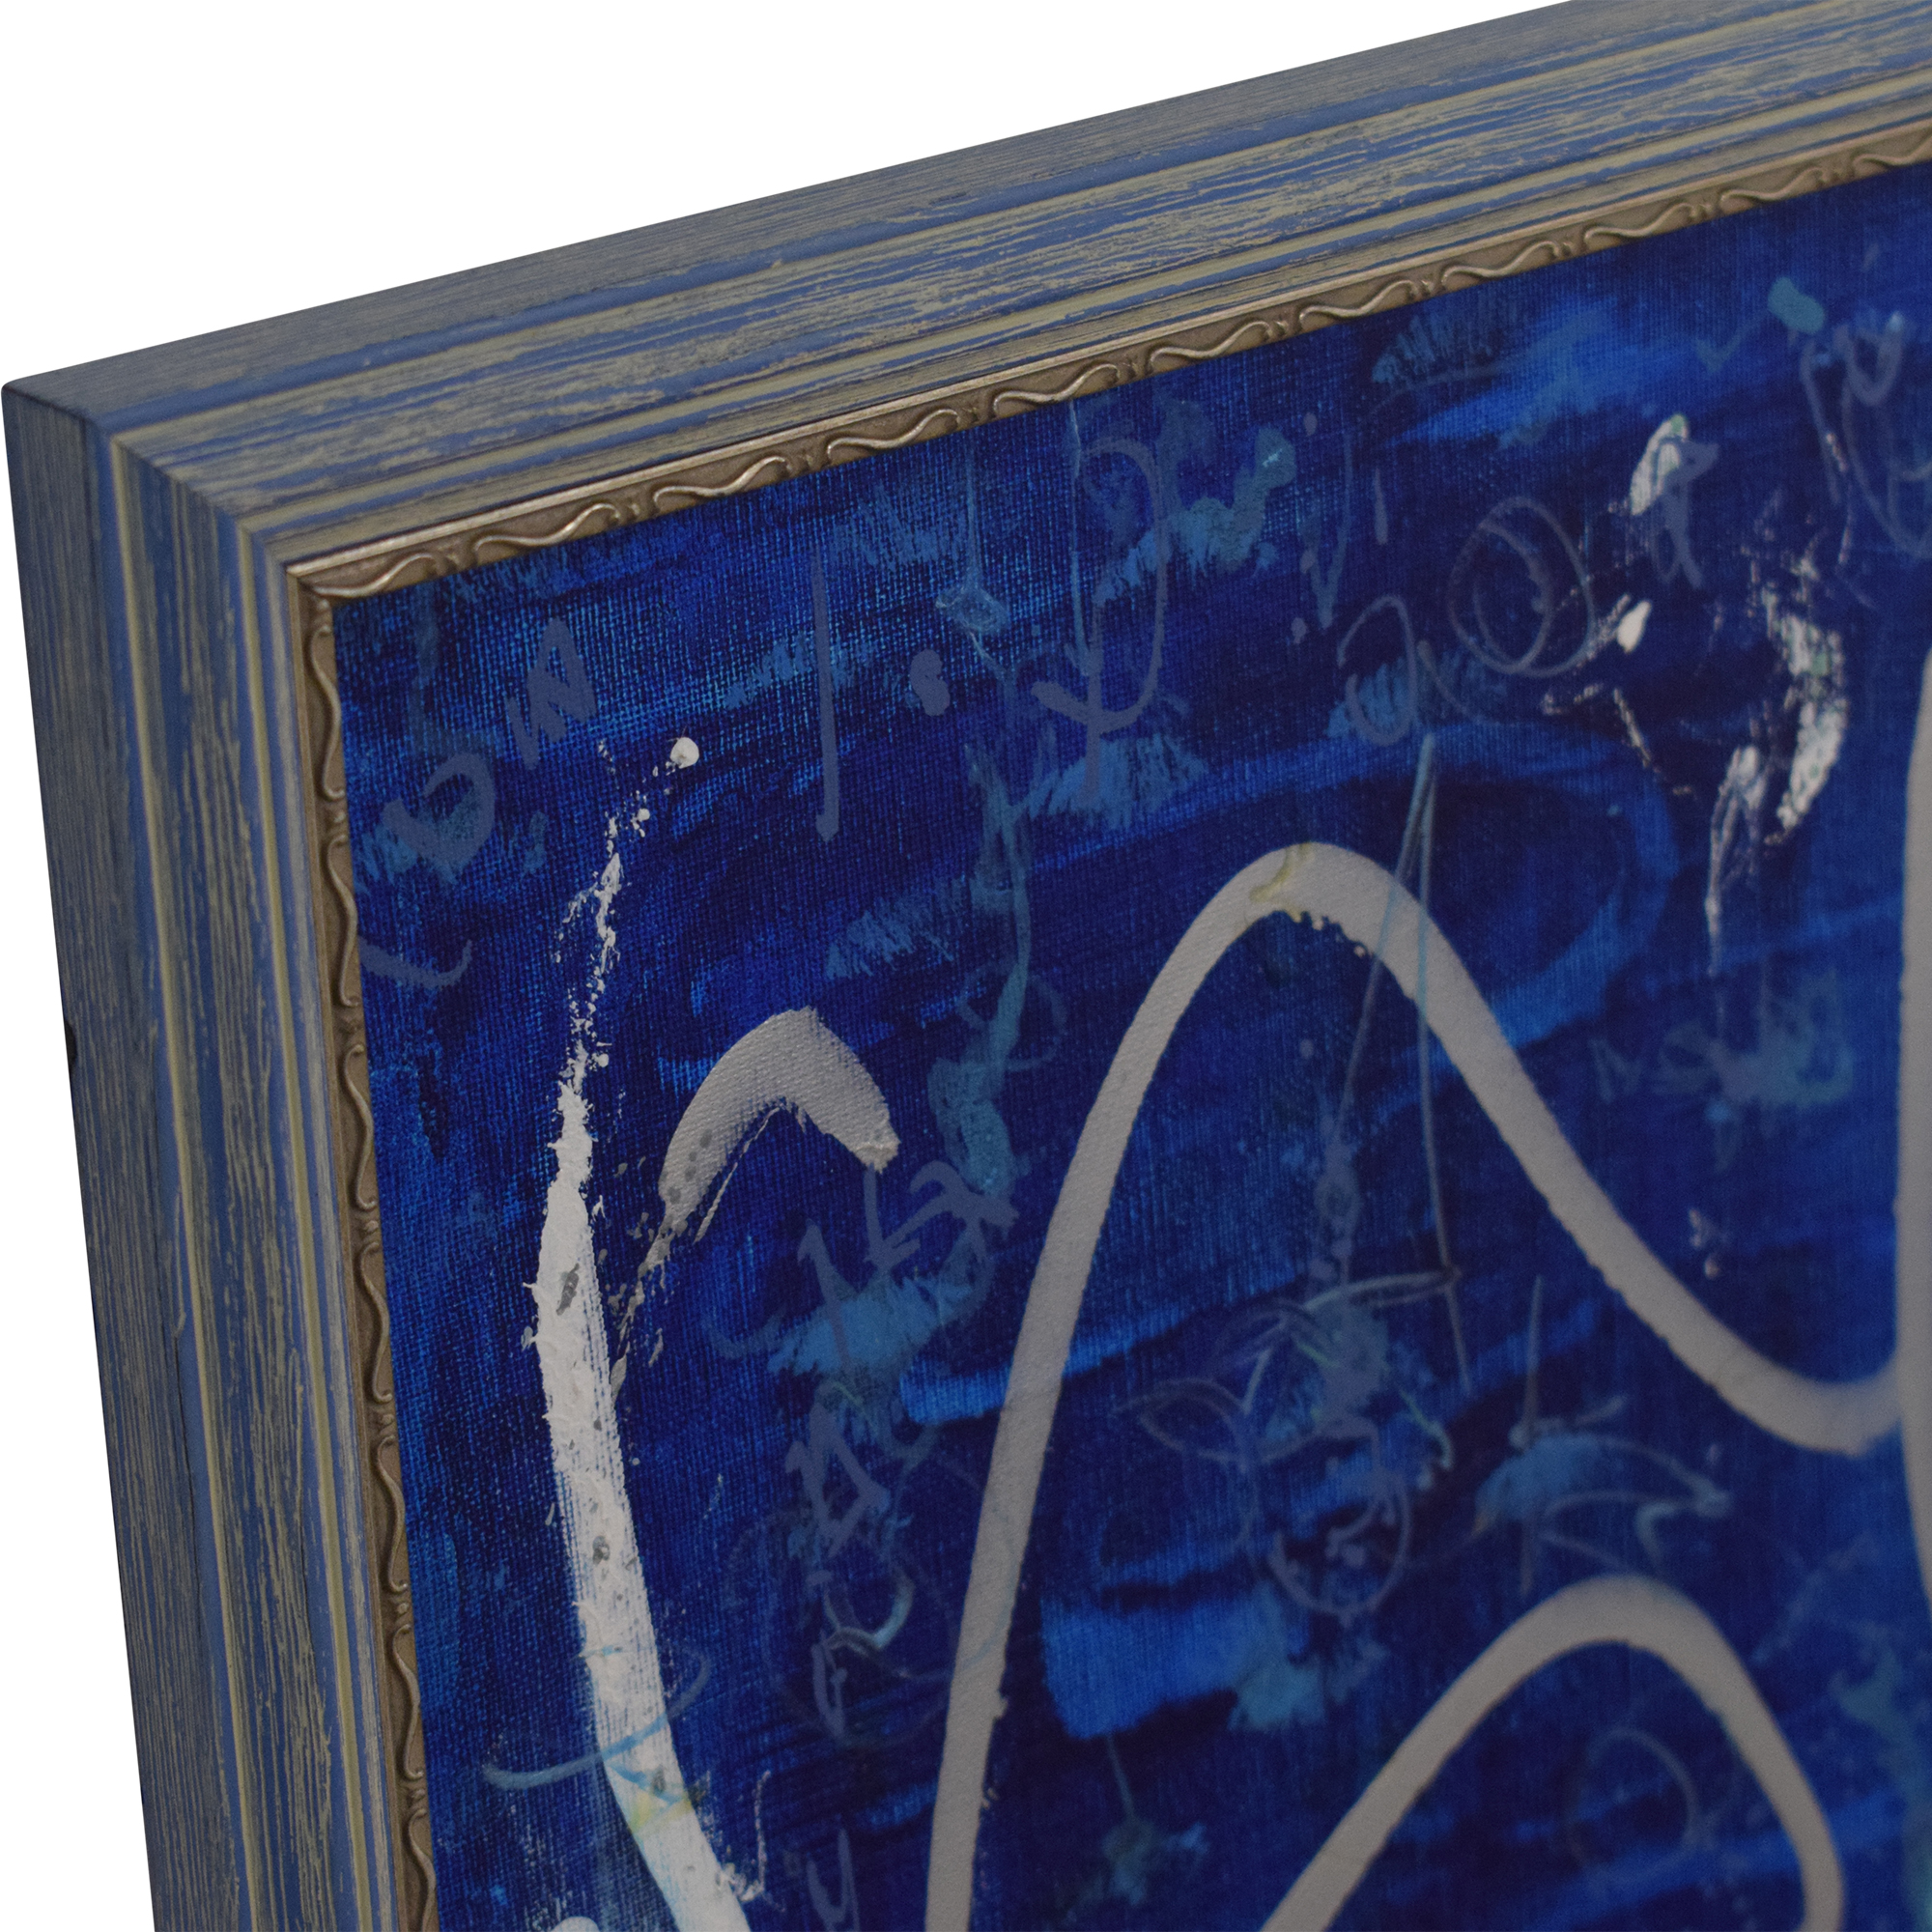 Abstract Framed Wall Art dimensions